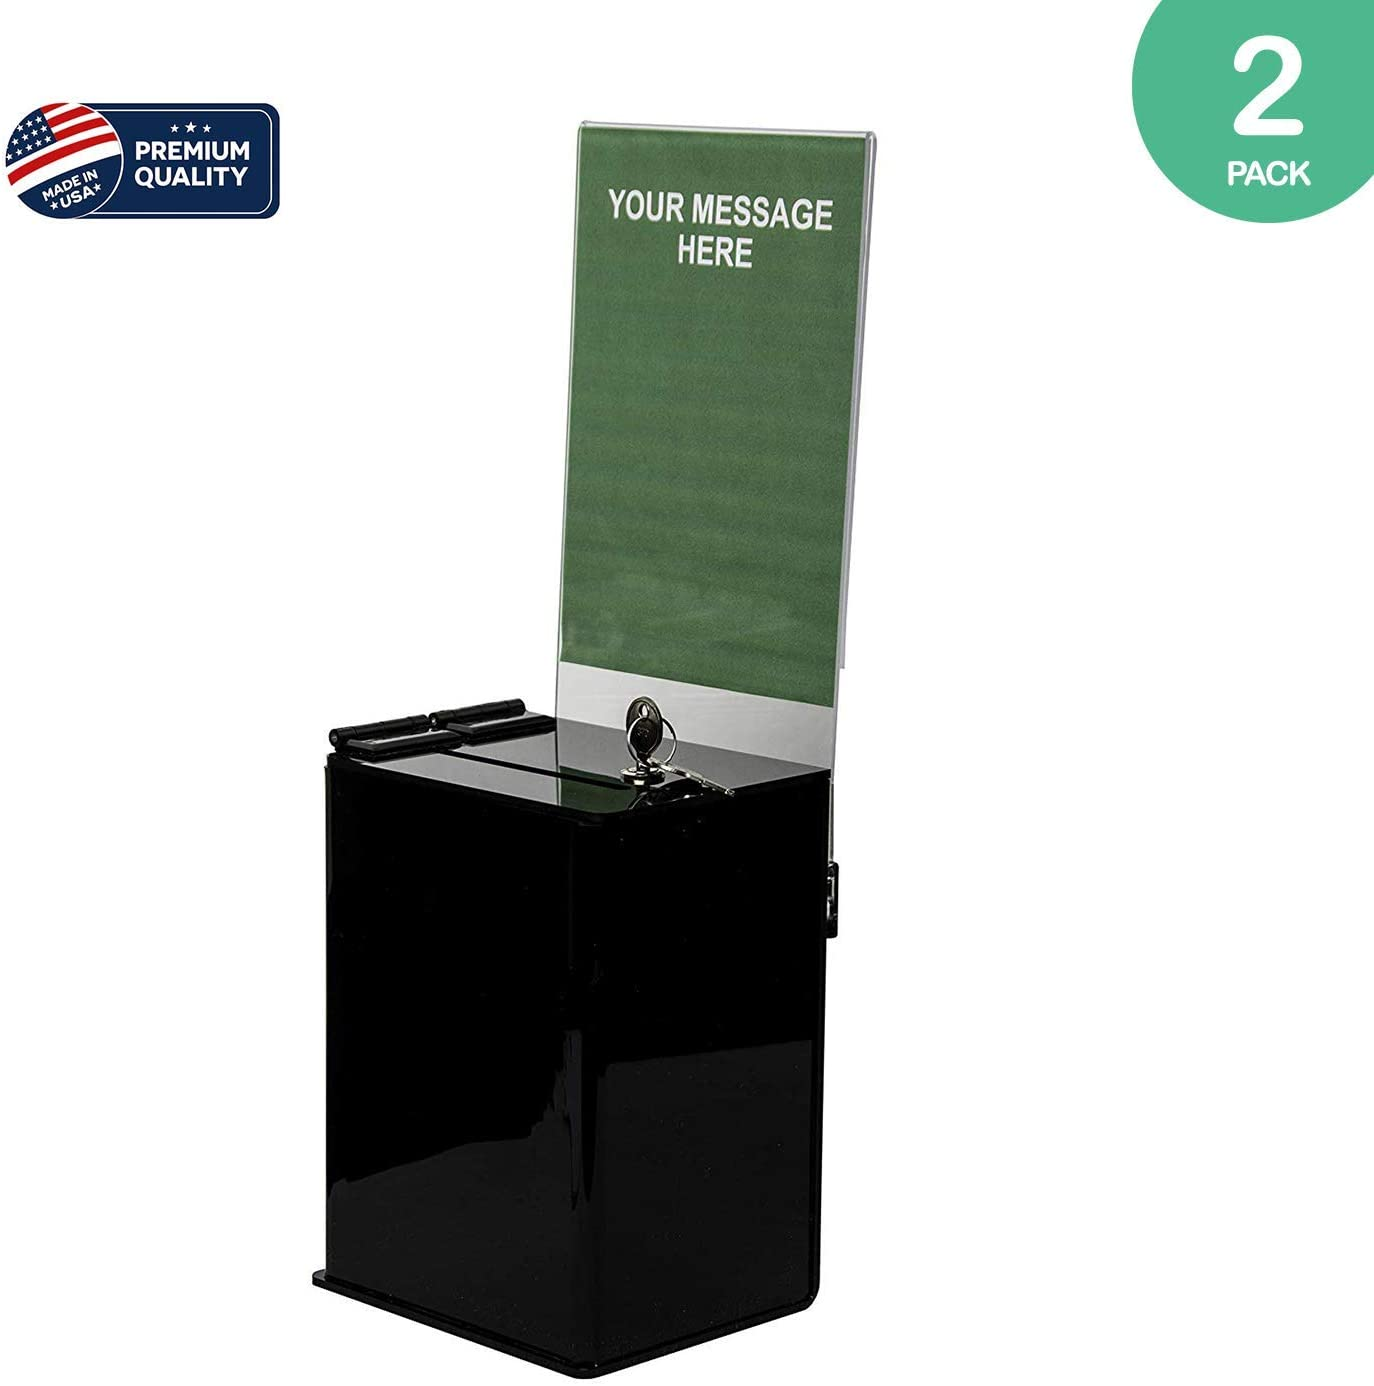 Clear-Ad - Black Acrylic Ballot & Donation Box 5x7x4 with Lock and Sign Holder - Plastic Countertop Container for Voting, Charity, Survey, Raffle, Contest, Suggestions, Tips, Comments (Pack of 2)